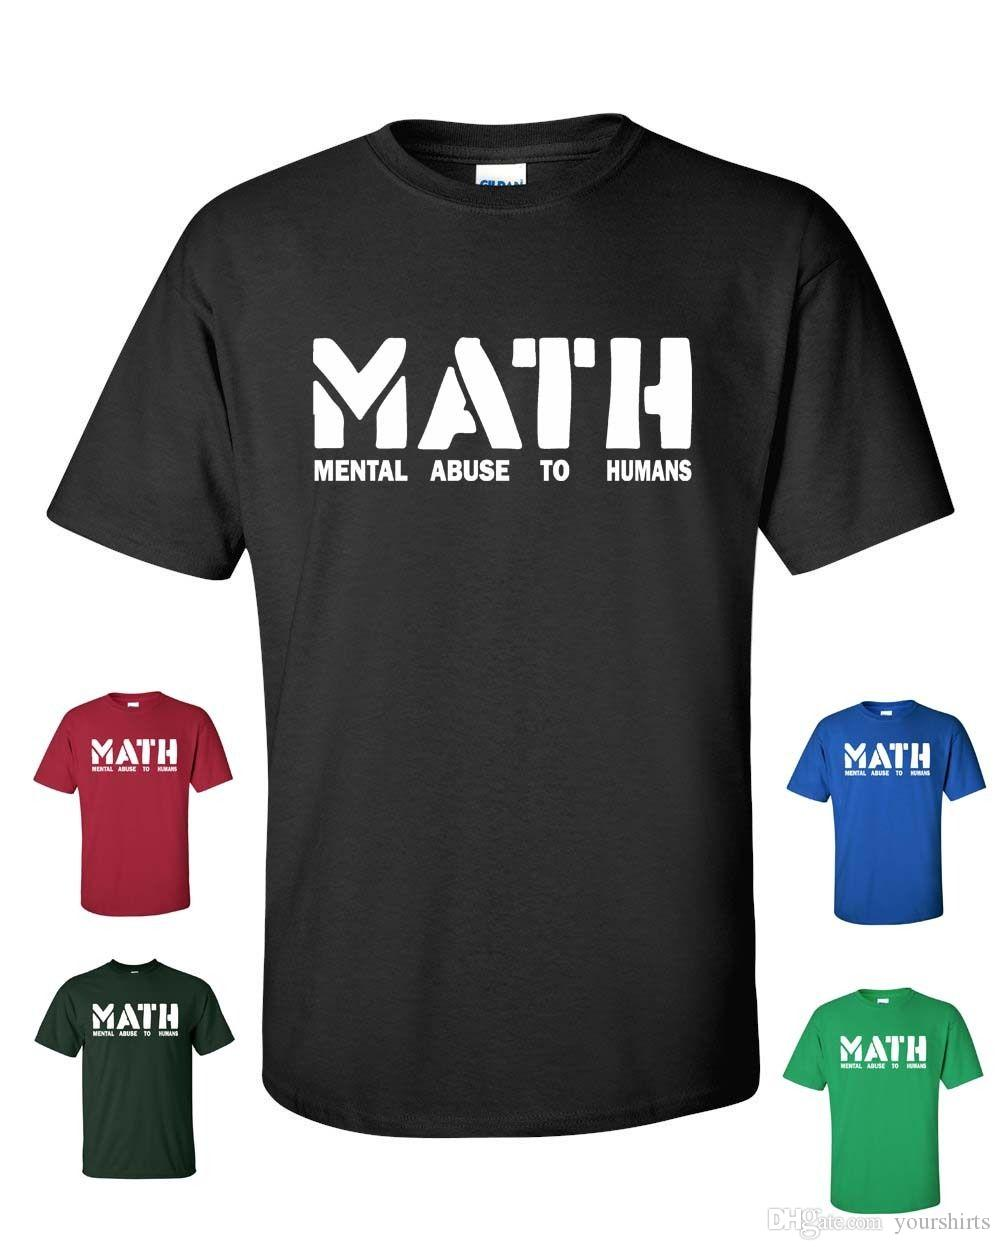 Math Mental Abuse To Humans School Teacher Teens Funny Men´s Tee Shirt T Shirt Men's Top Design Short Sleeve Crewneck Cotton Plus Size Party